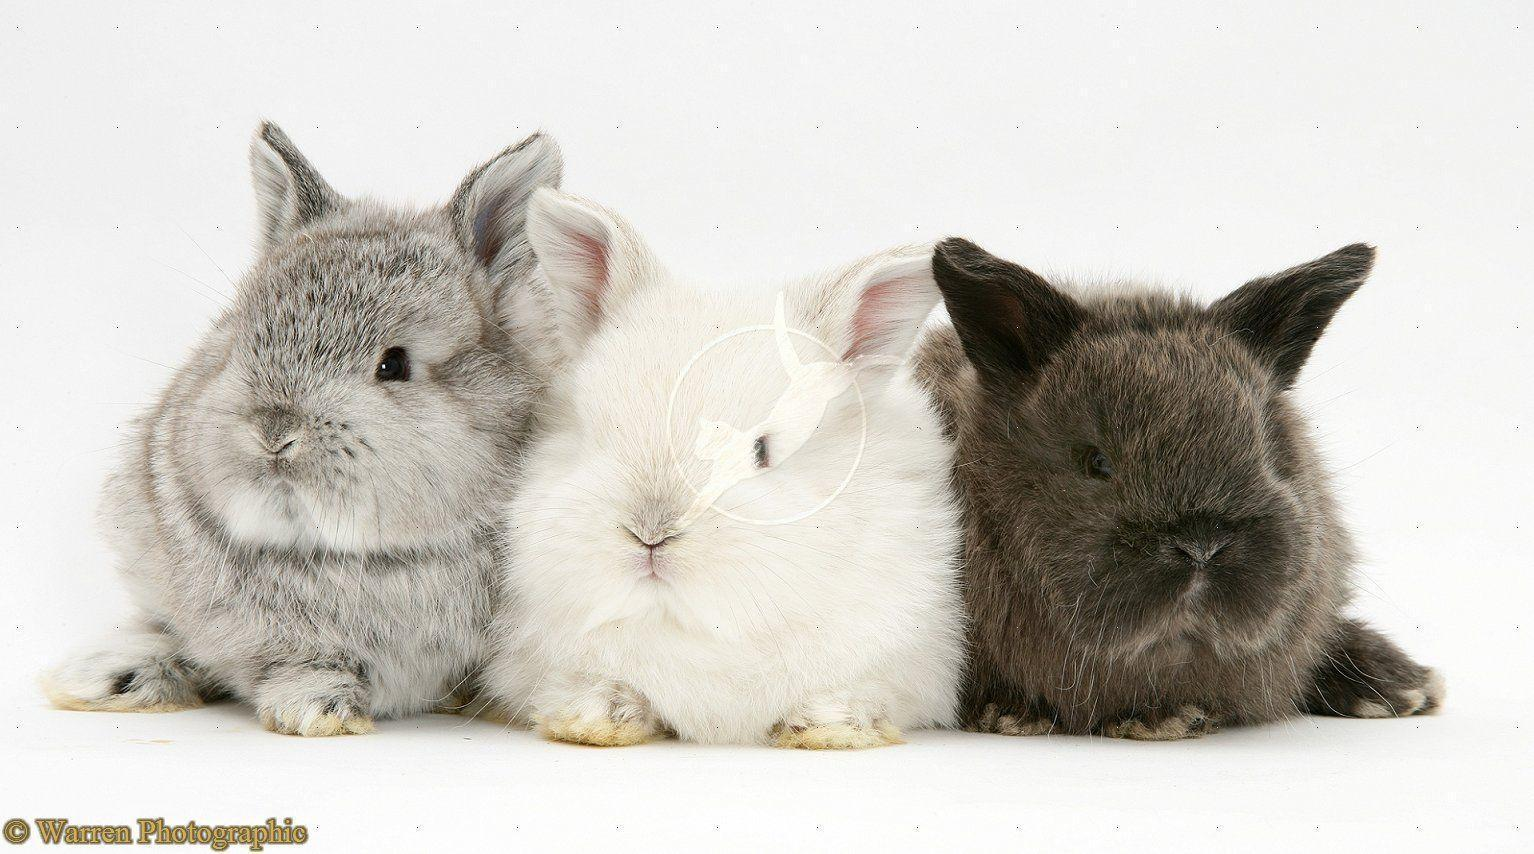 Cute Bunny Wallpapers - Wallpaper Cave - photo#24